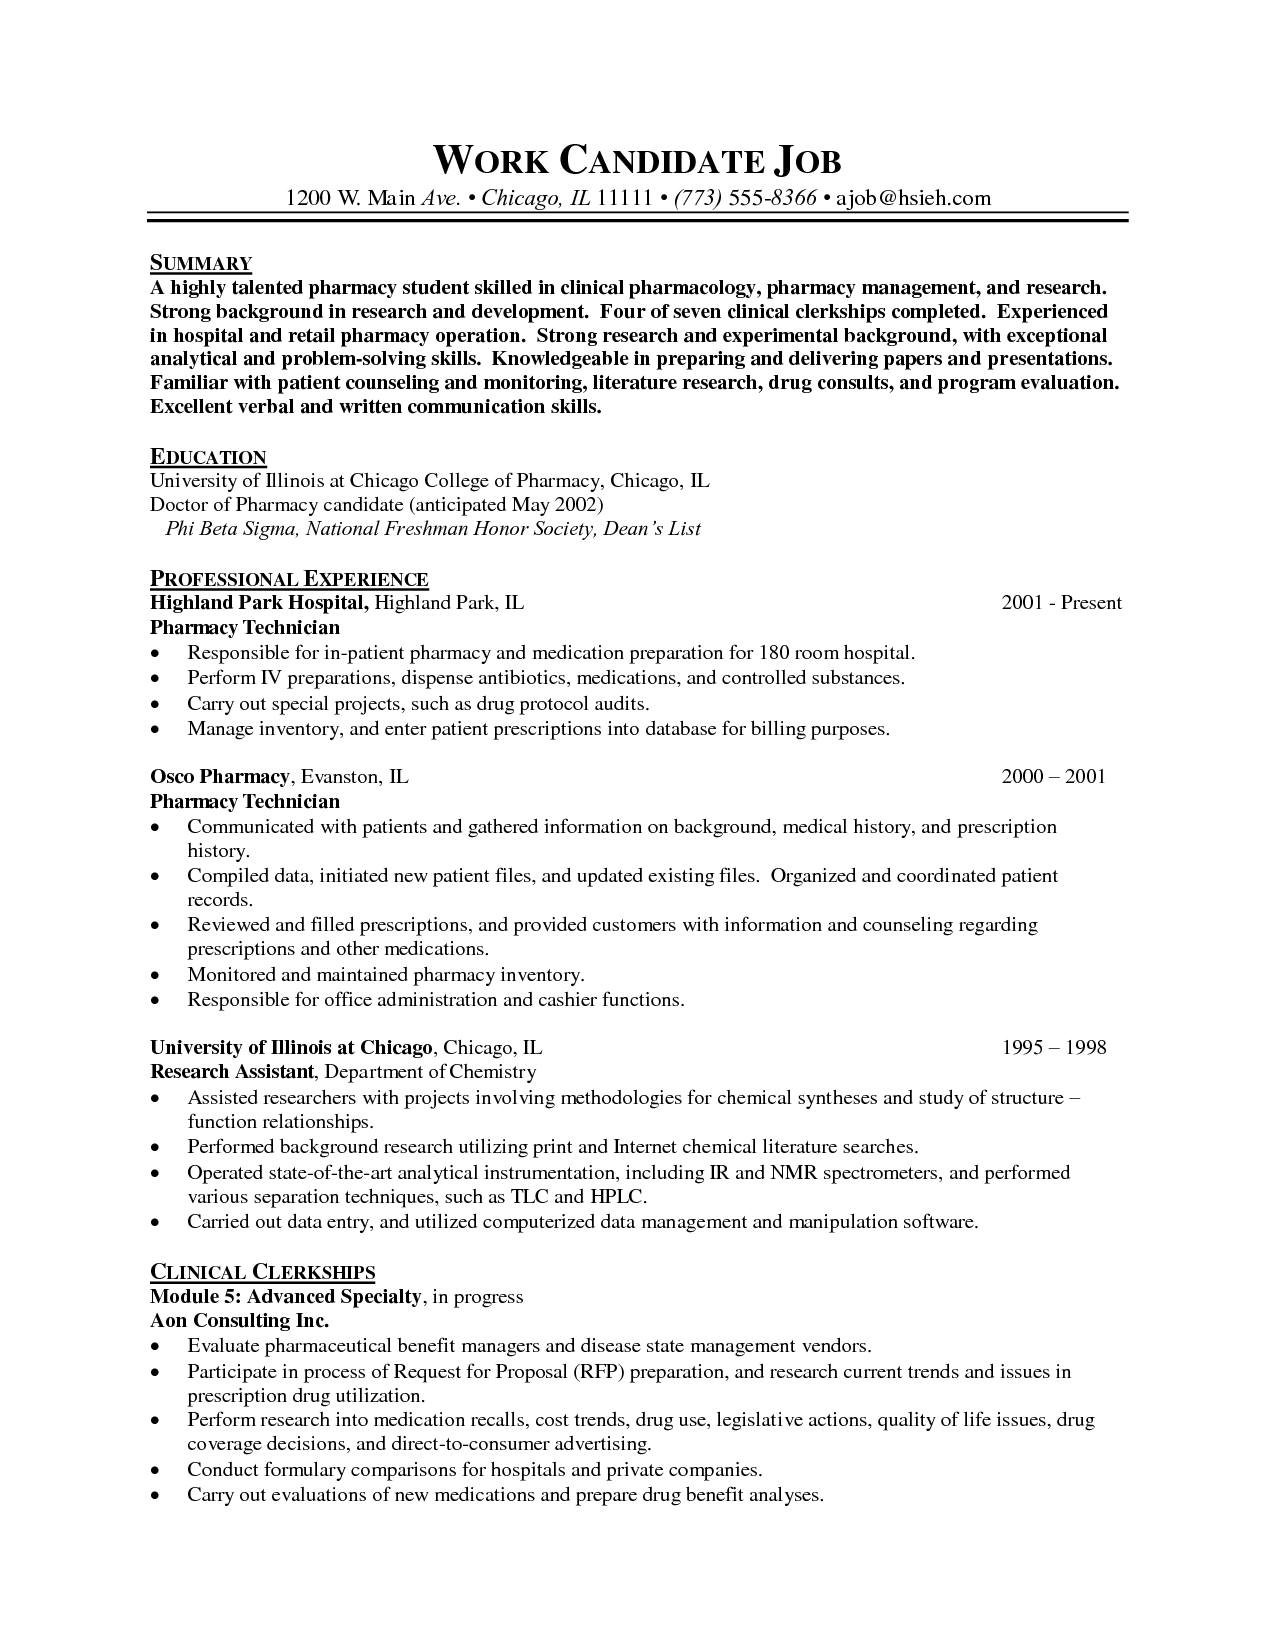 Free Examples Of Resumes Professional Resume Cover Letter Sample  Get Instant Risk Free